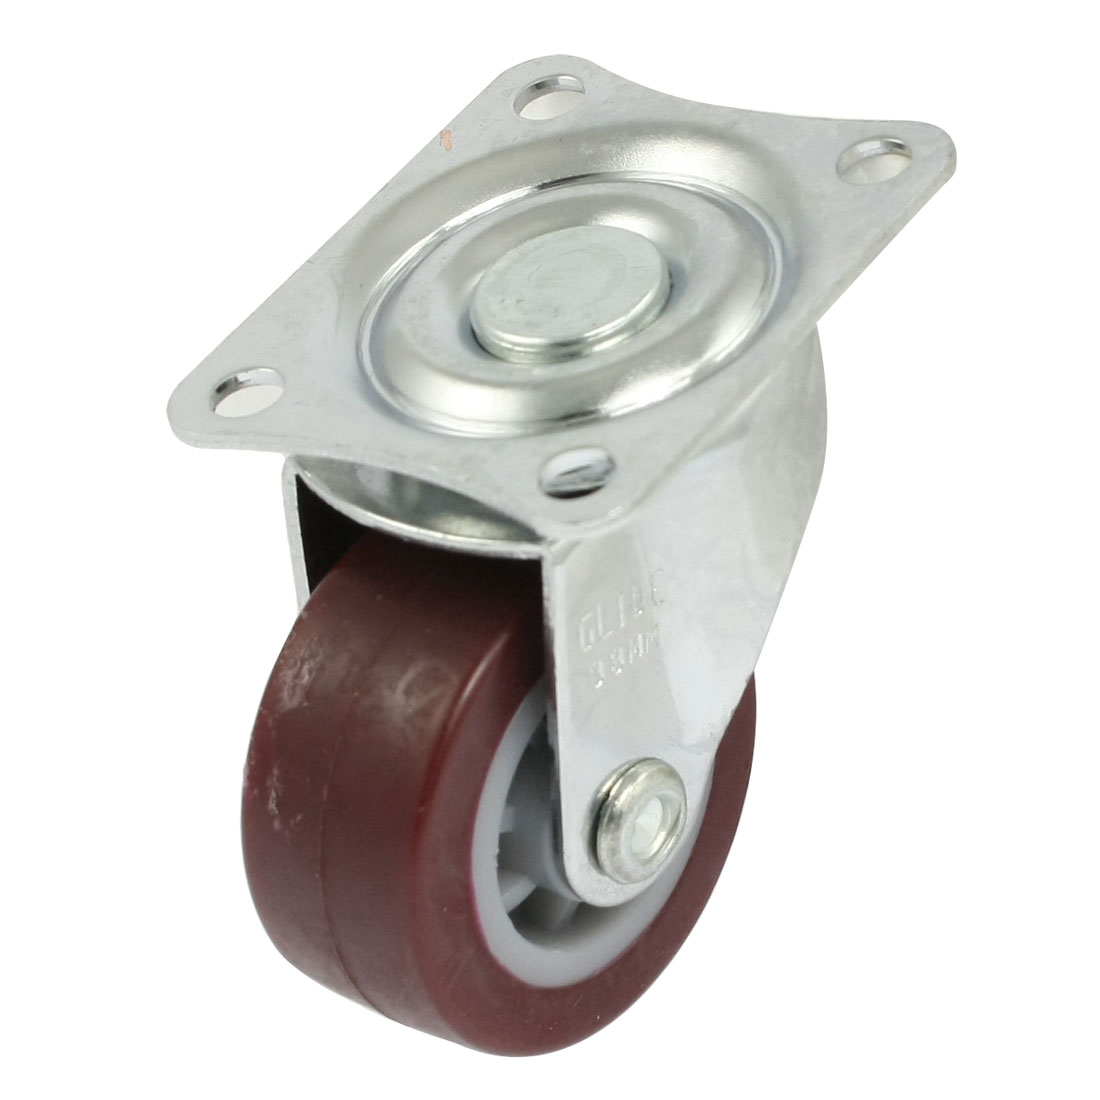 35mm x 15mm Light Duty Fixed Type Burgundy PP Industrial Caster Wheel